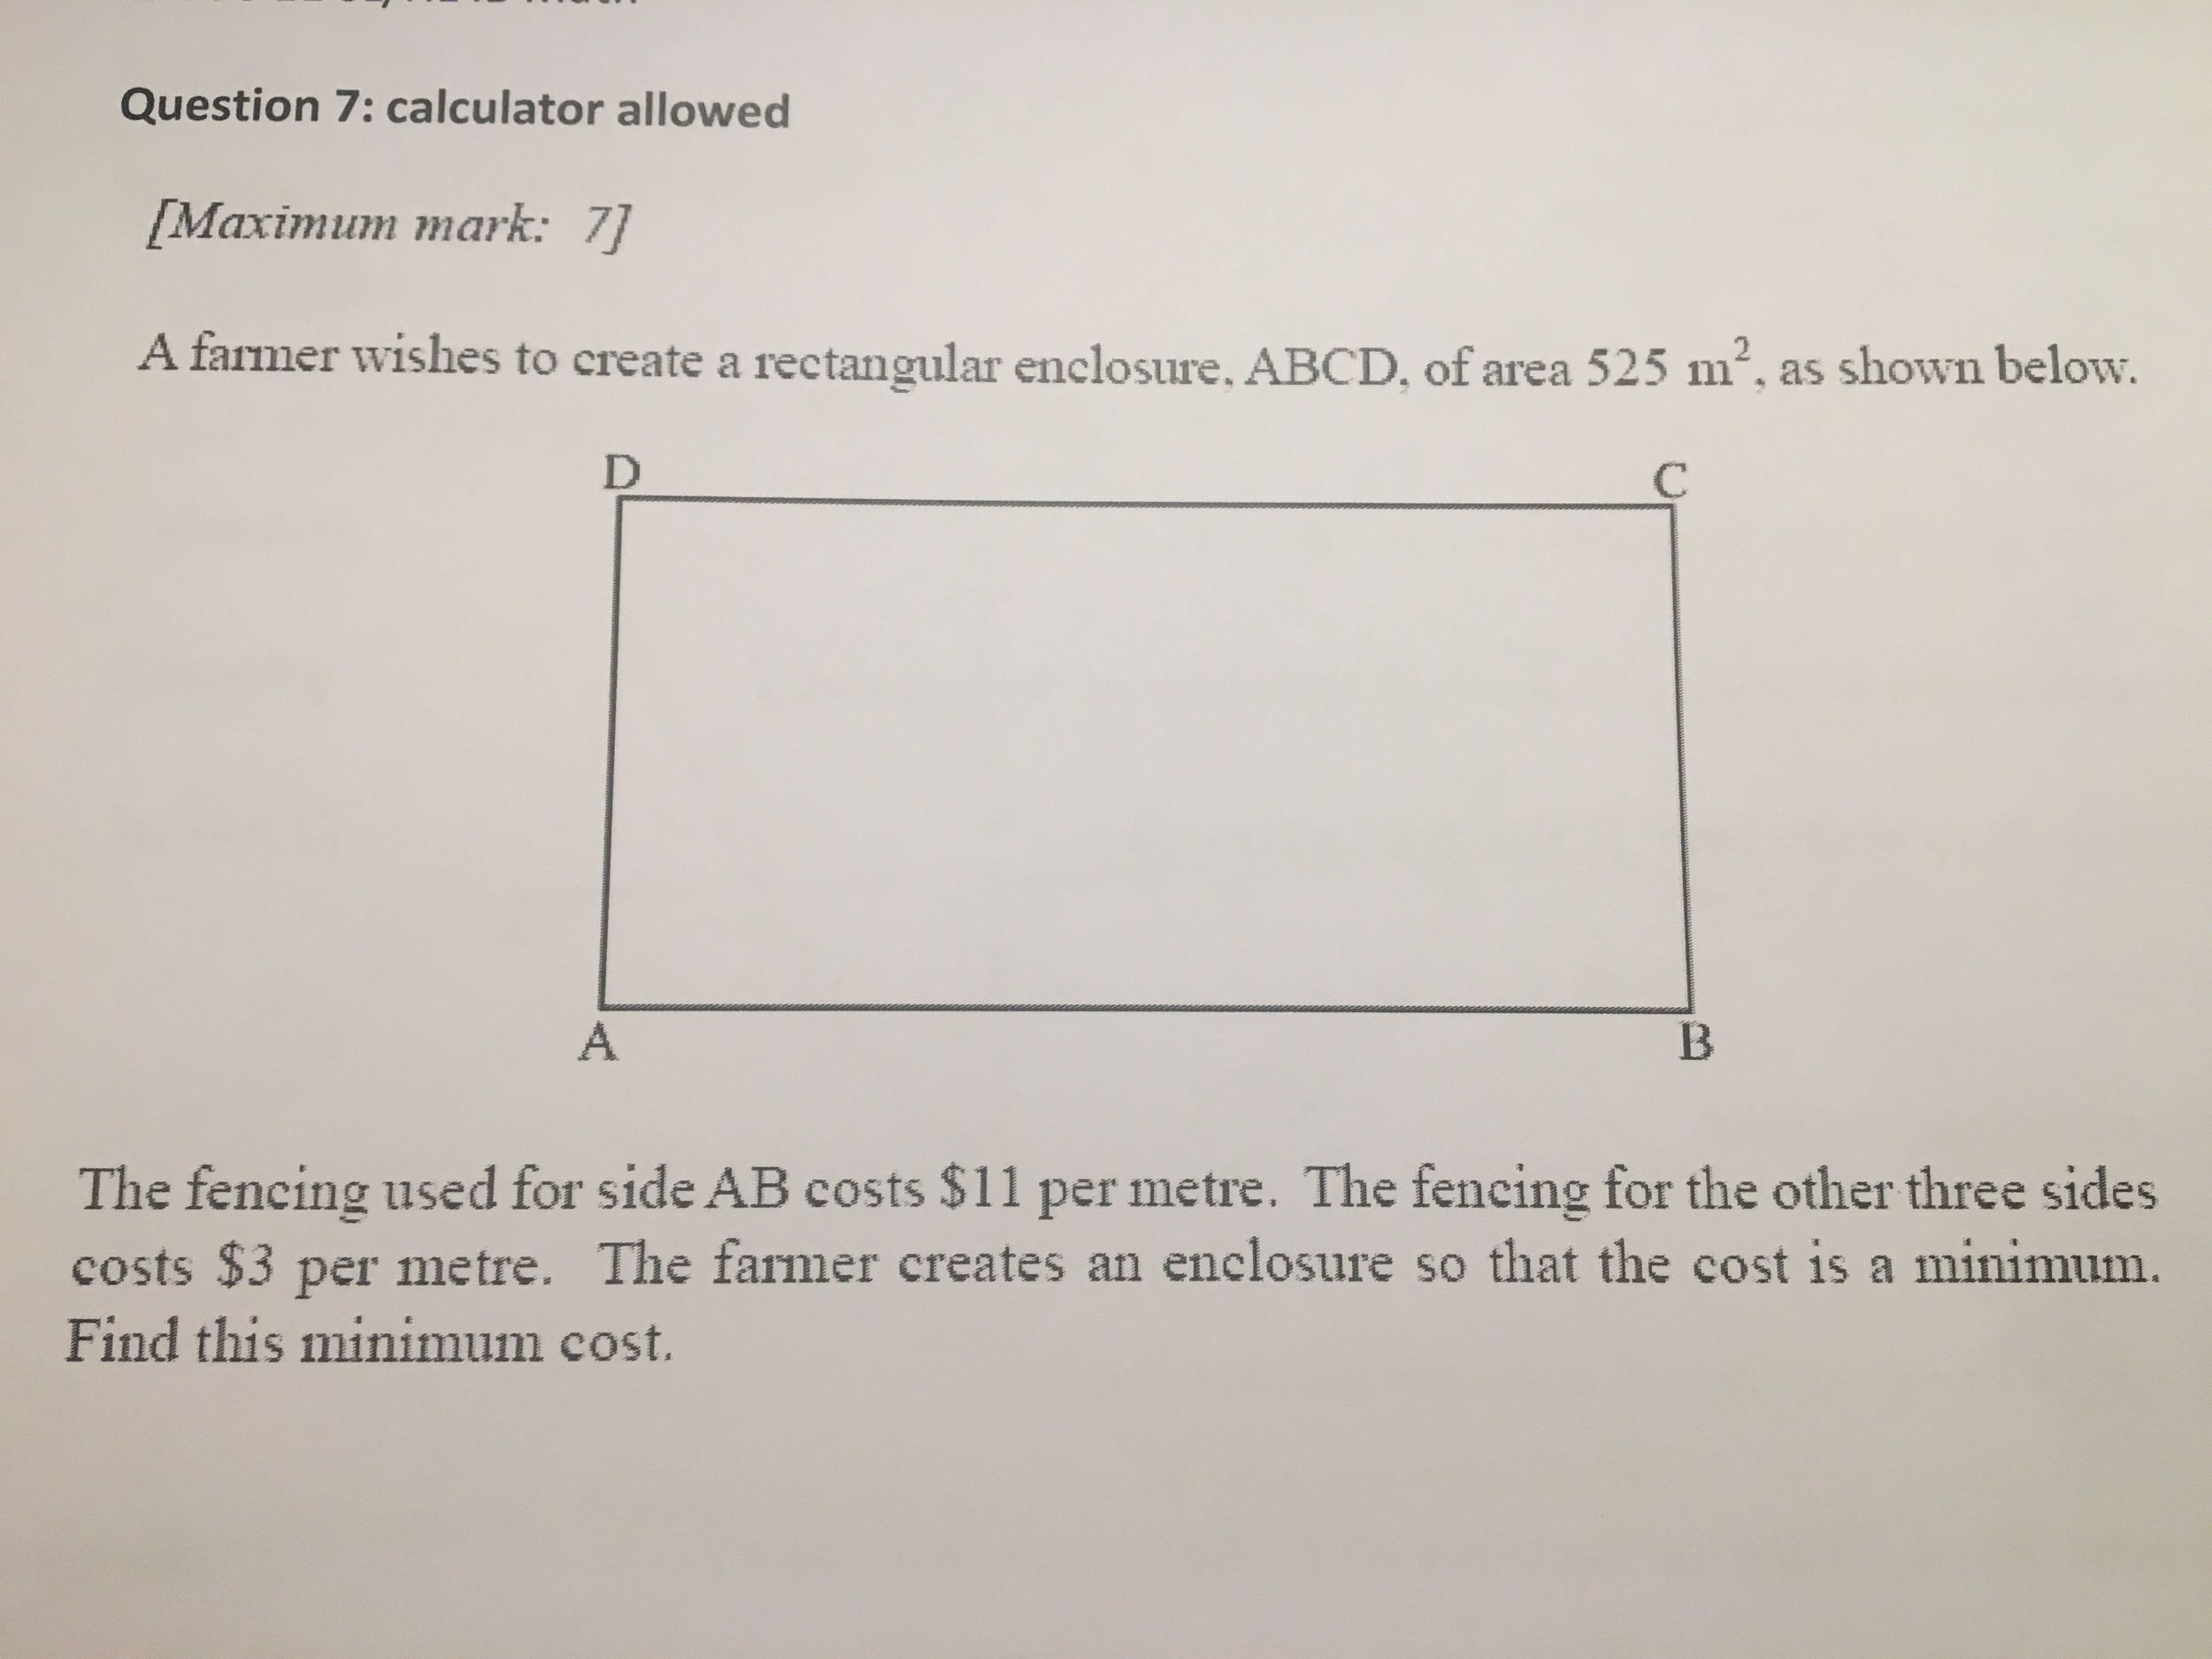 Solved: A Farmer Wishes To Create A Rectangular Enclosure